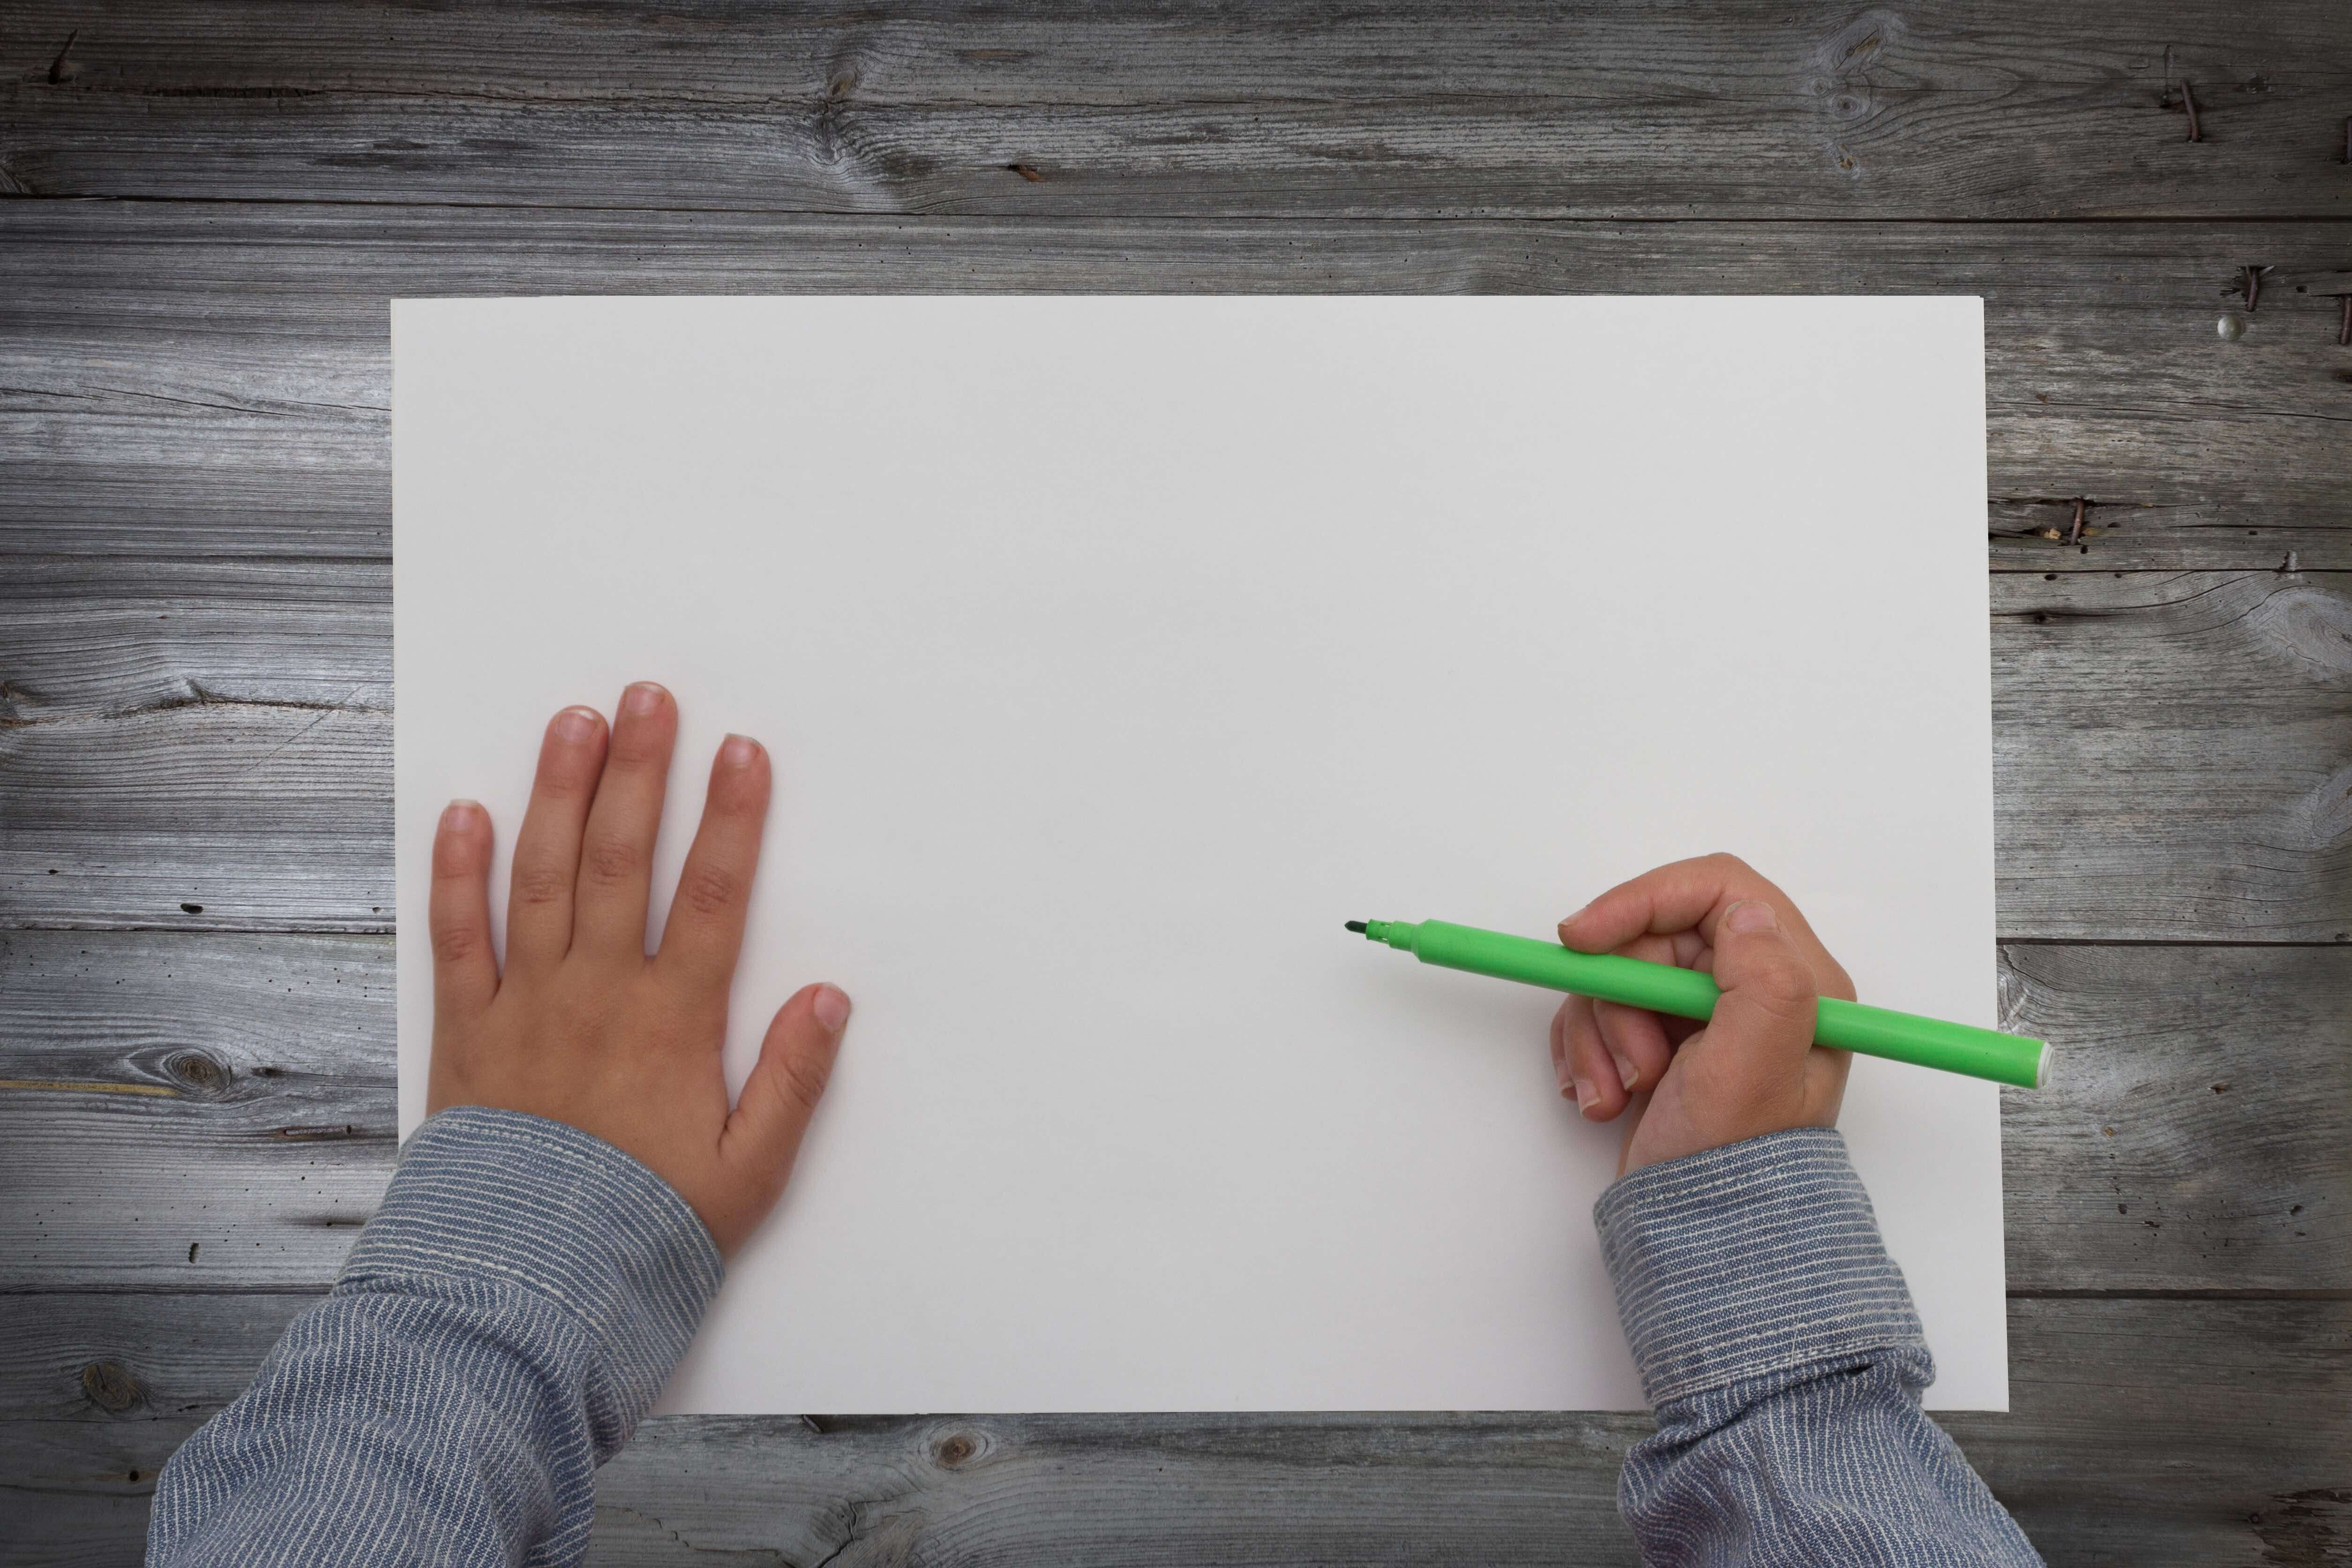 A child holds a marker over a blank piece of paper.